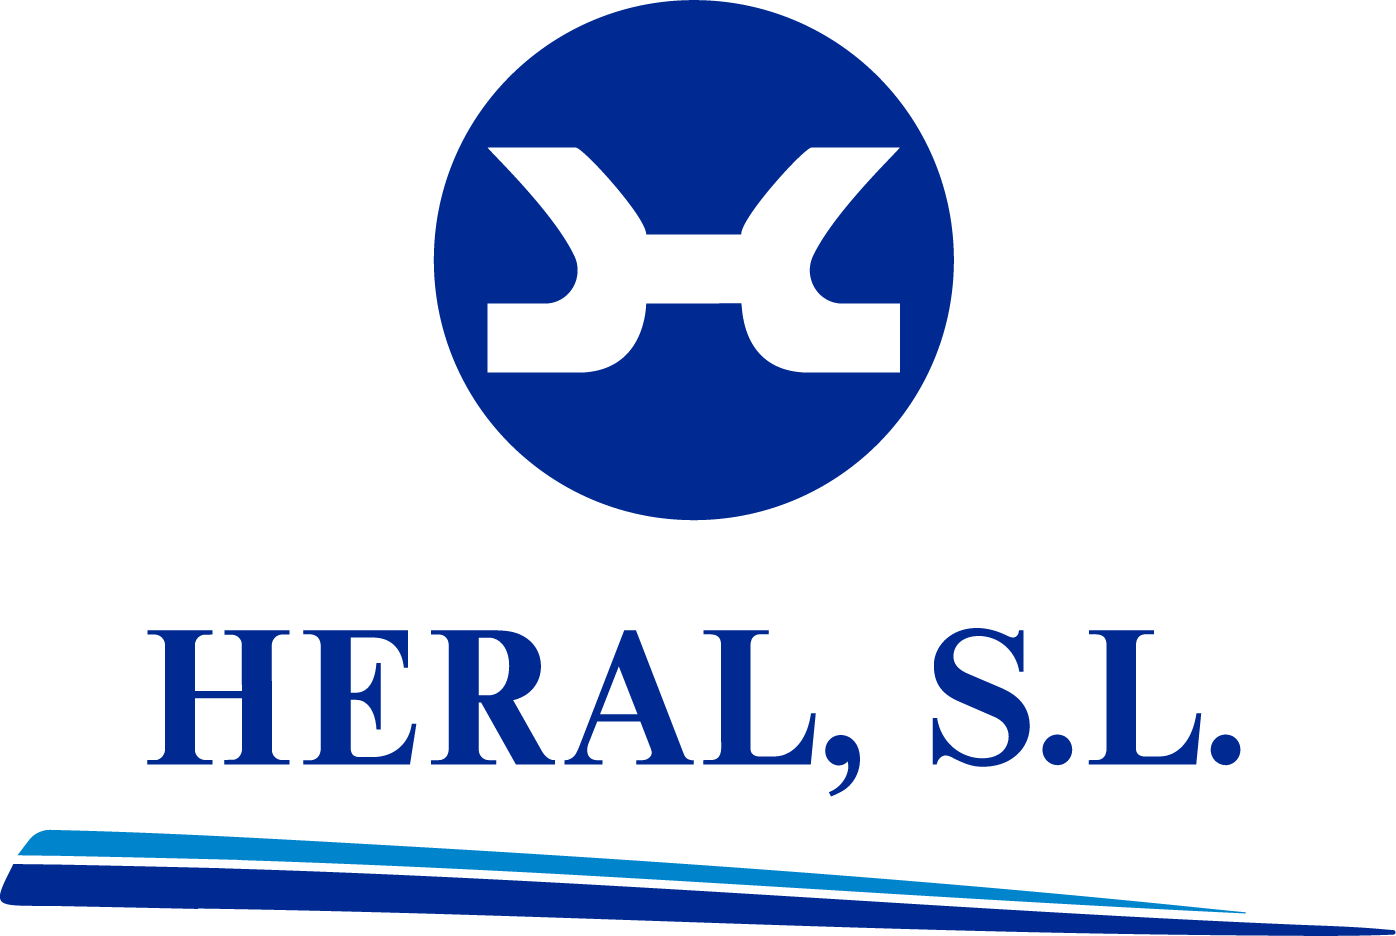 Heral SL